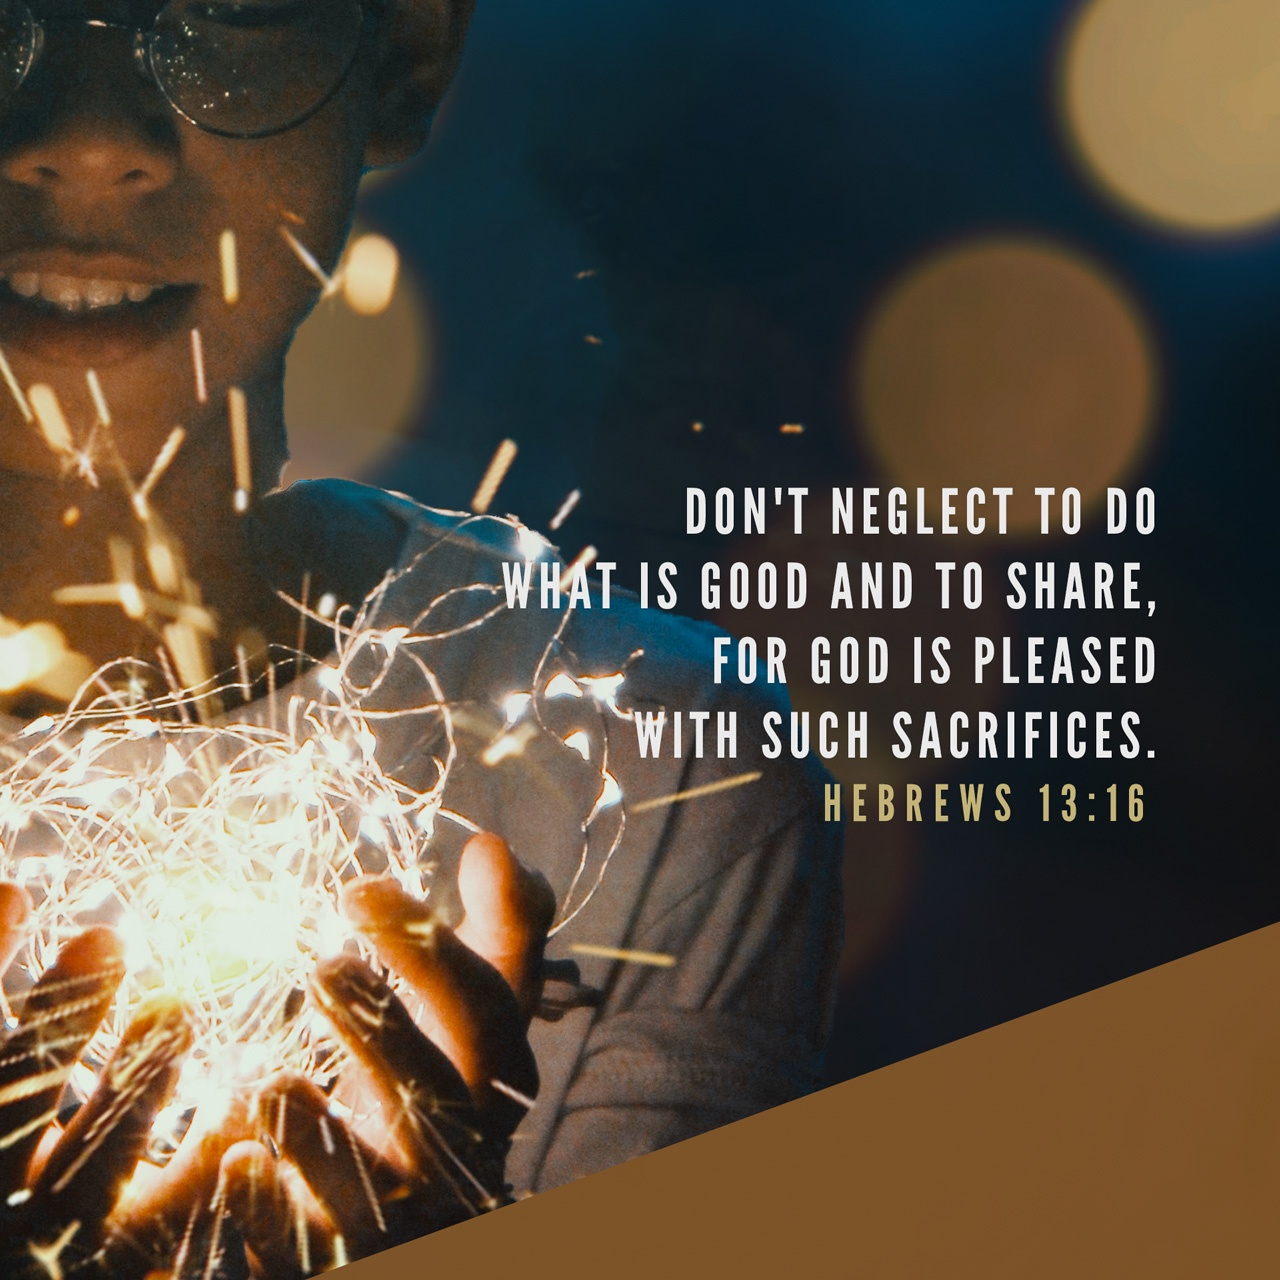 Hebrews 13:16 But to do good and to communicate forget not: for with such sacrifices God is well pleased. | King James Version (KJV) | Download The Bible App Now